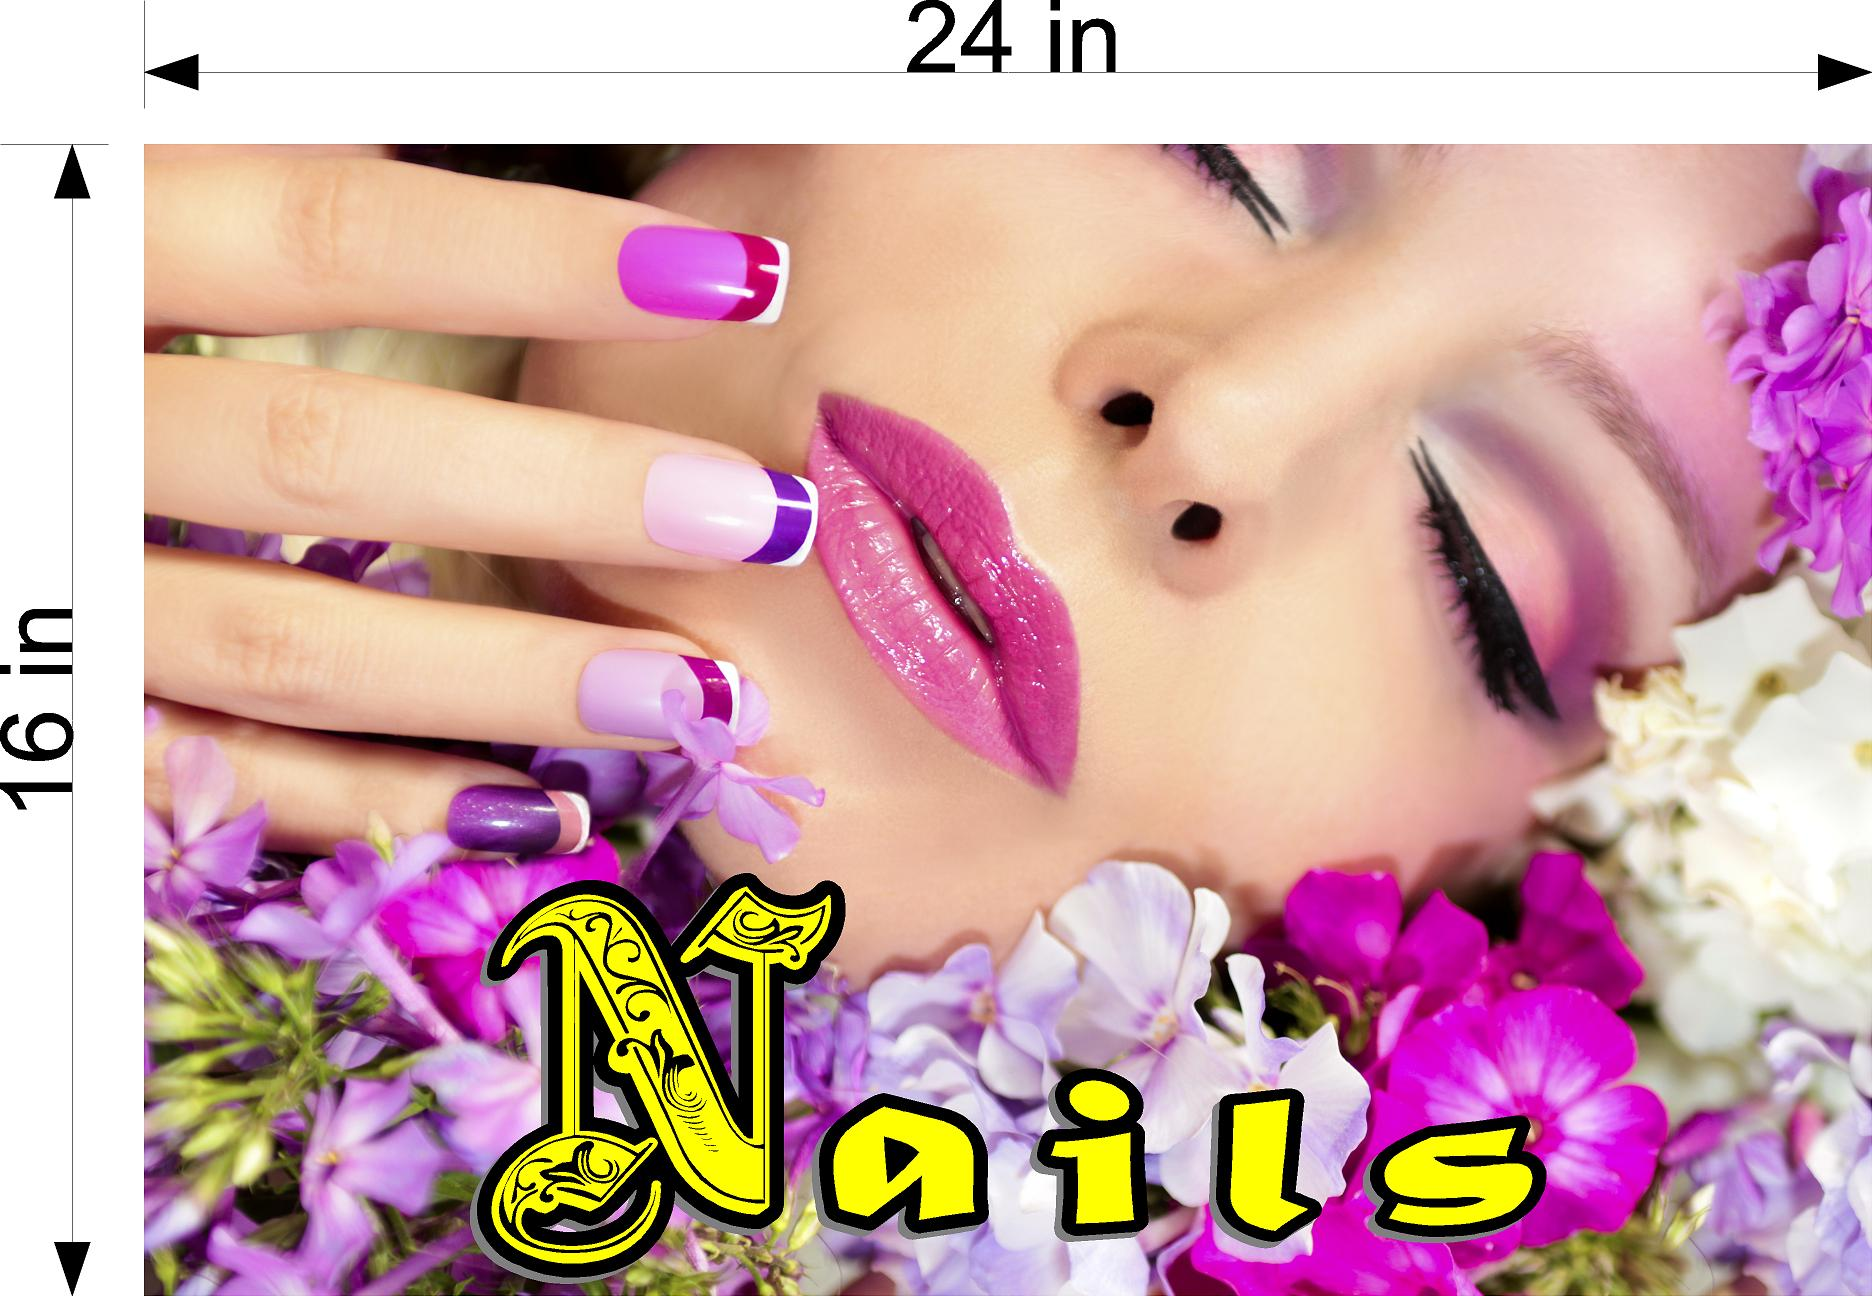 Nails 18 Perforated Mesh One Way Vision See-Through Window Vinyl Salon Sign Horizontal